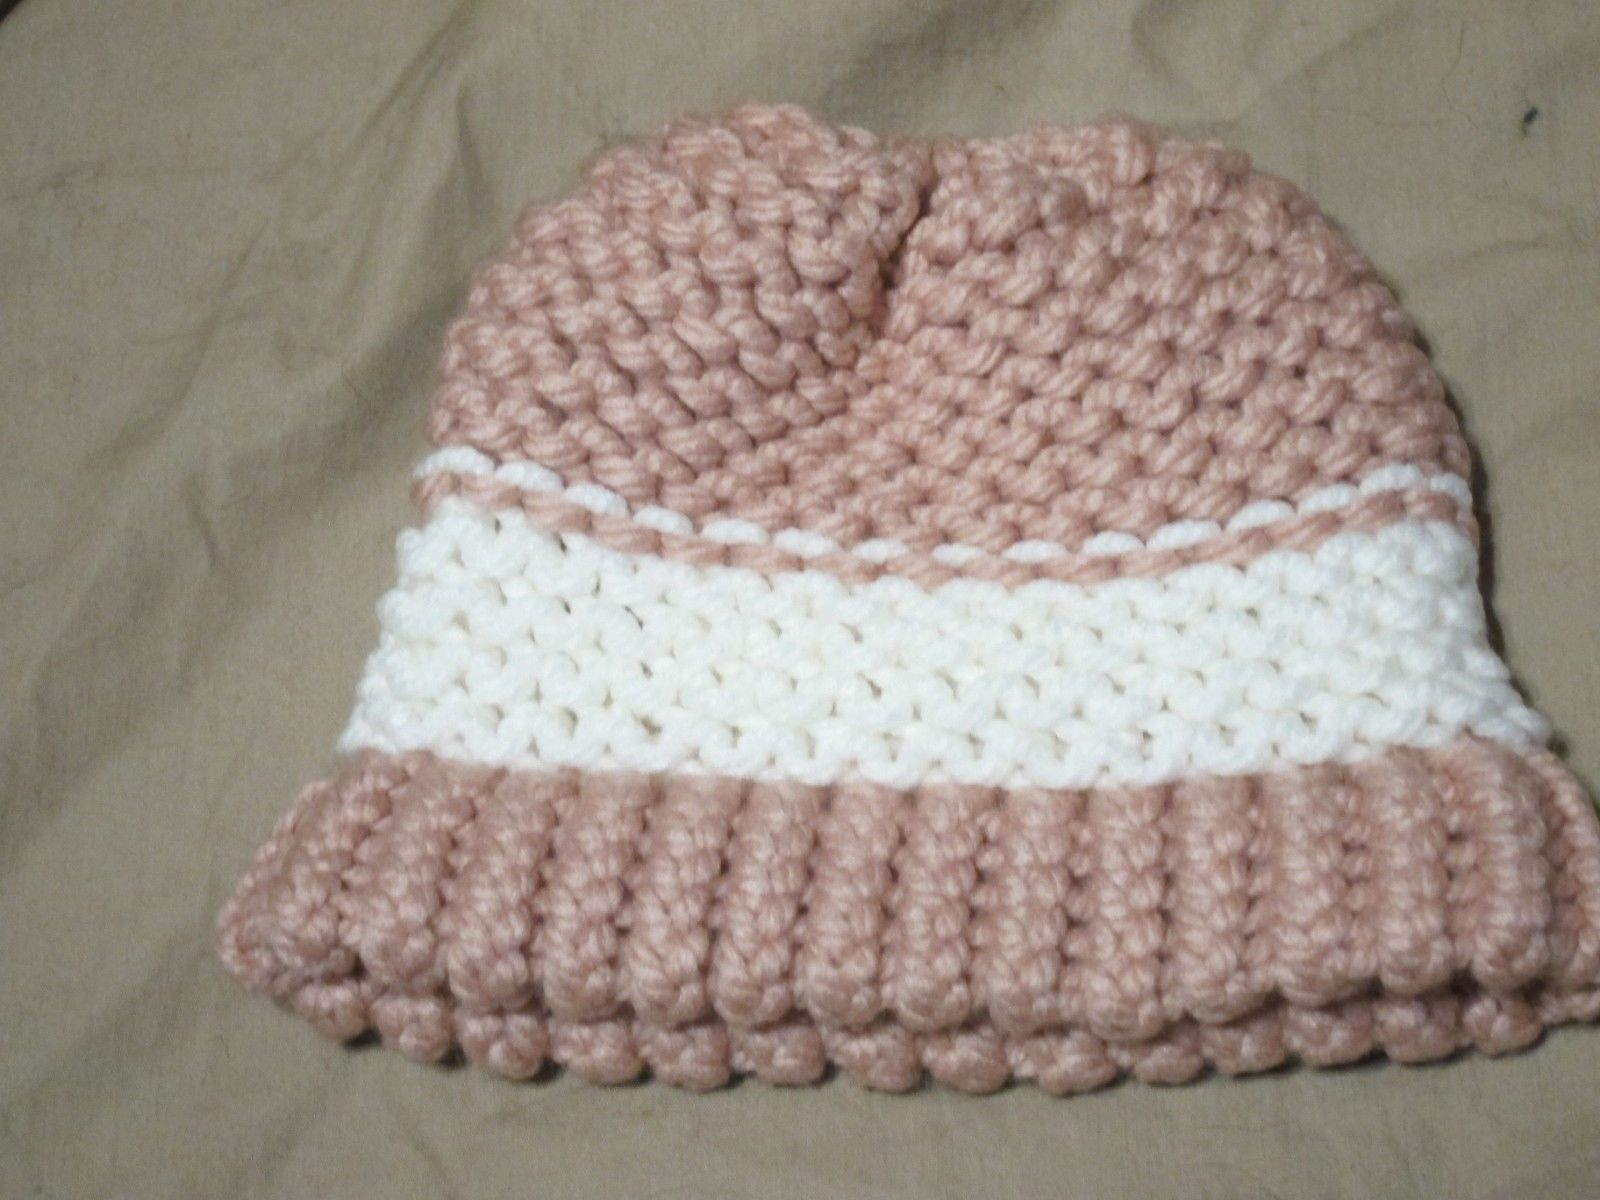 Handmade Knitted Pink White Infant Winter Hat Cap CUTE